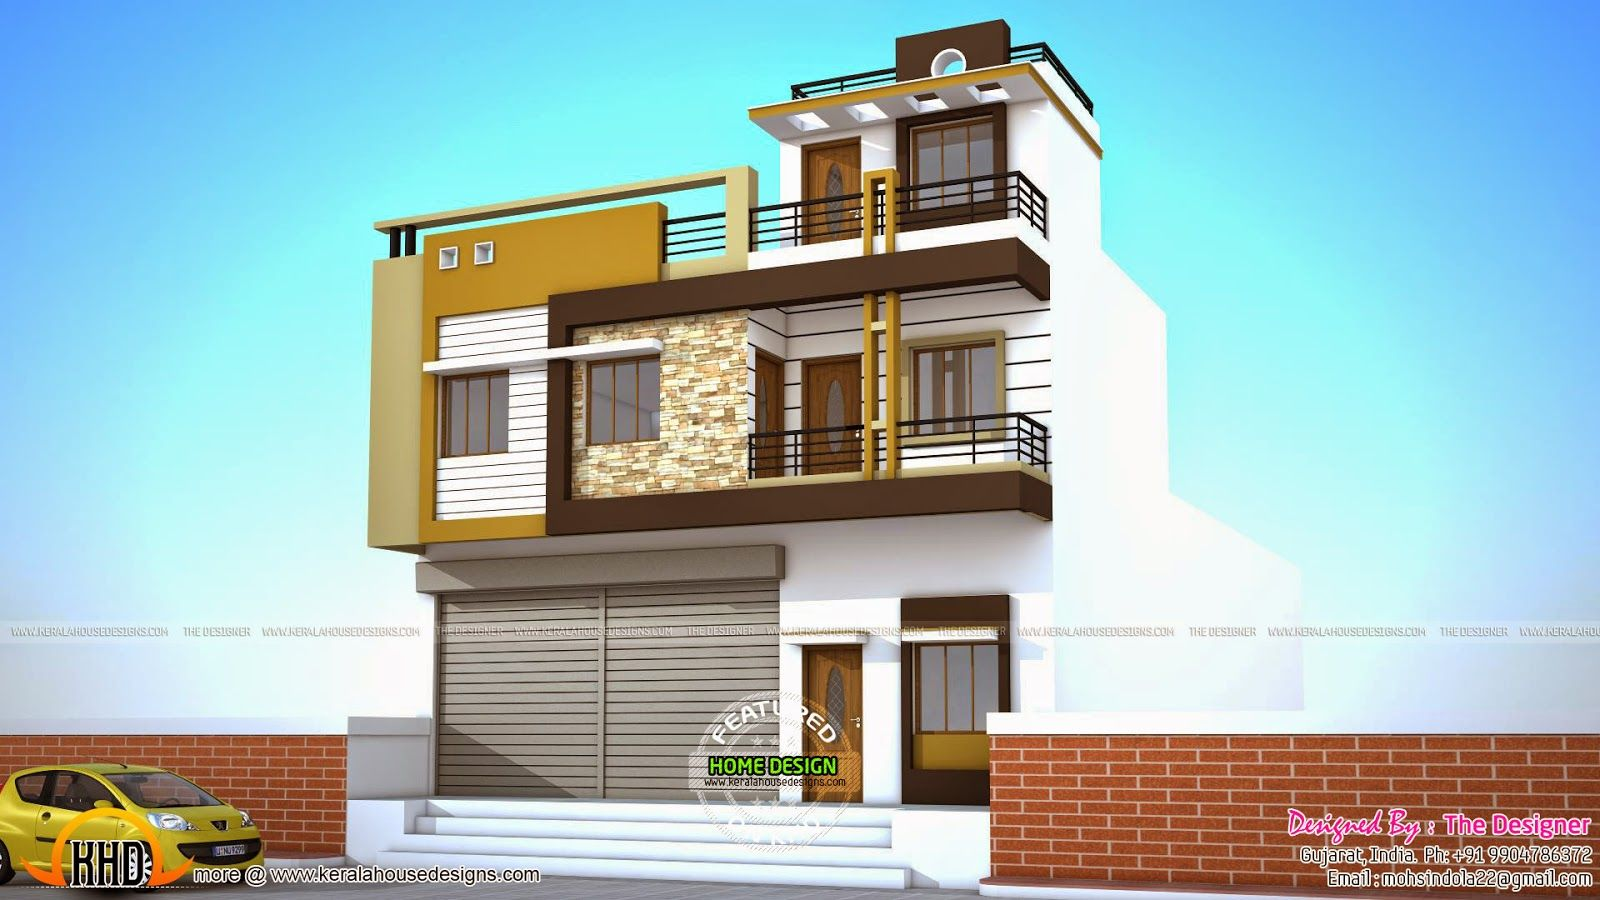 2 house plans with shops on ground floor in 2019 | House Elevation | House design, 2 storey ...